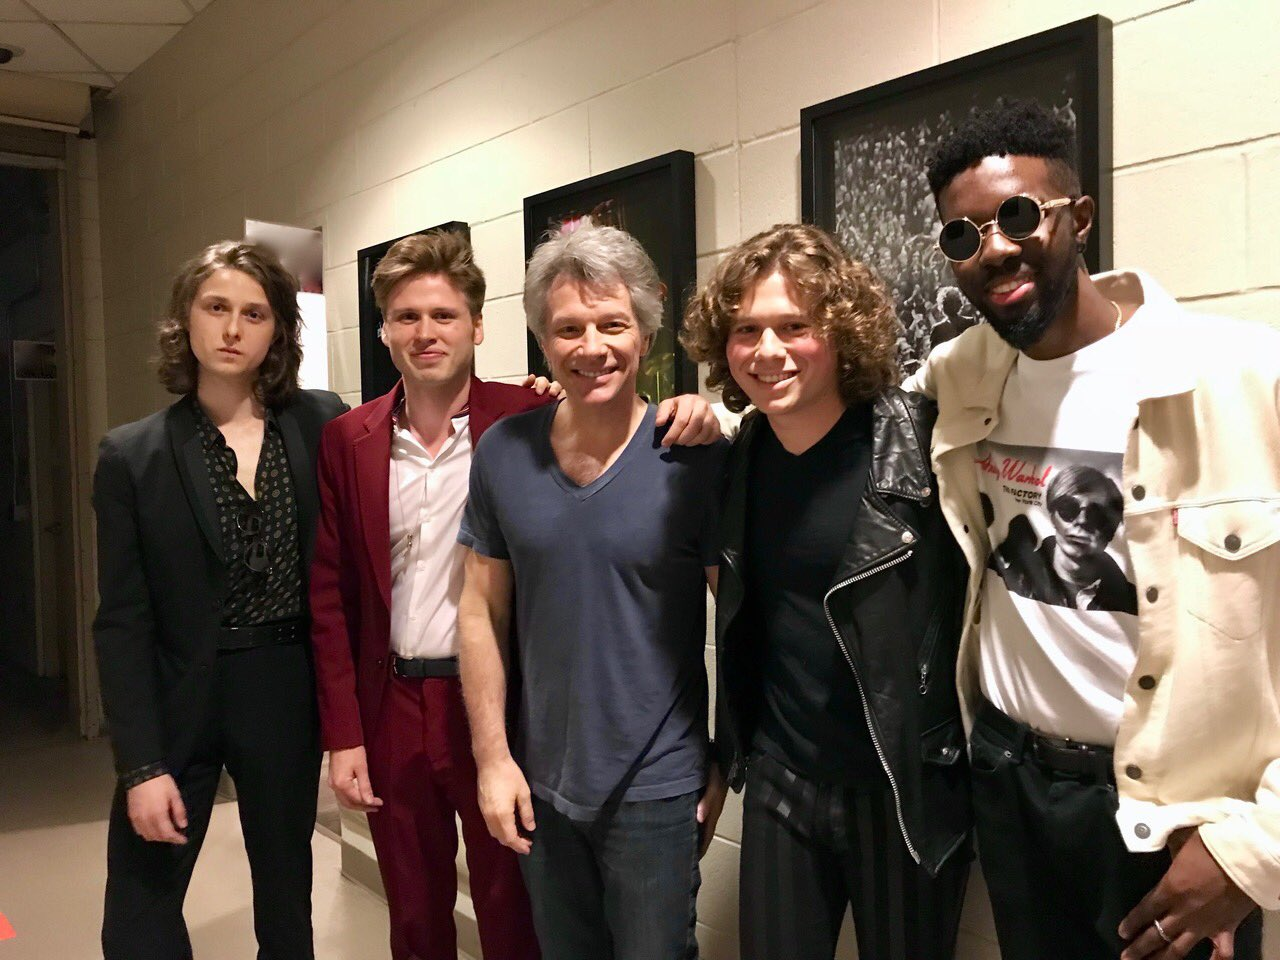 New York! Thanks for two sold out nights @TheGarden�� JBJ with show opener, @TemptBand! #THINFStour https://t.co/NGpCtHtSw5